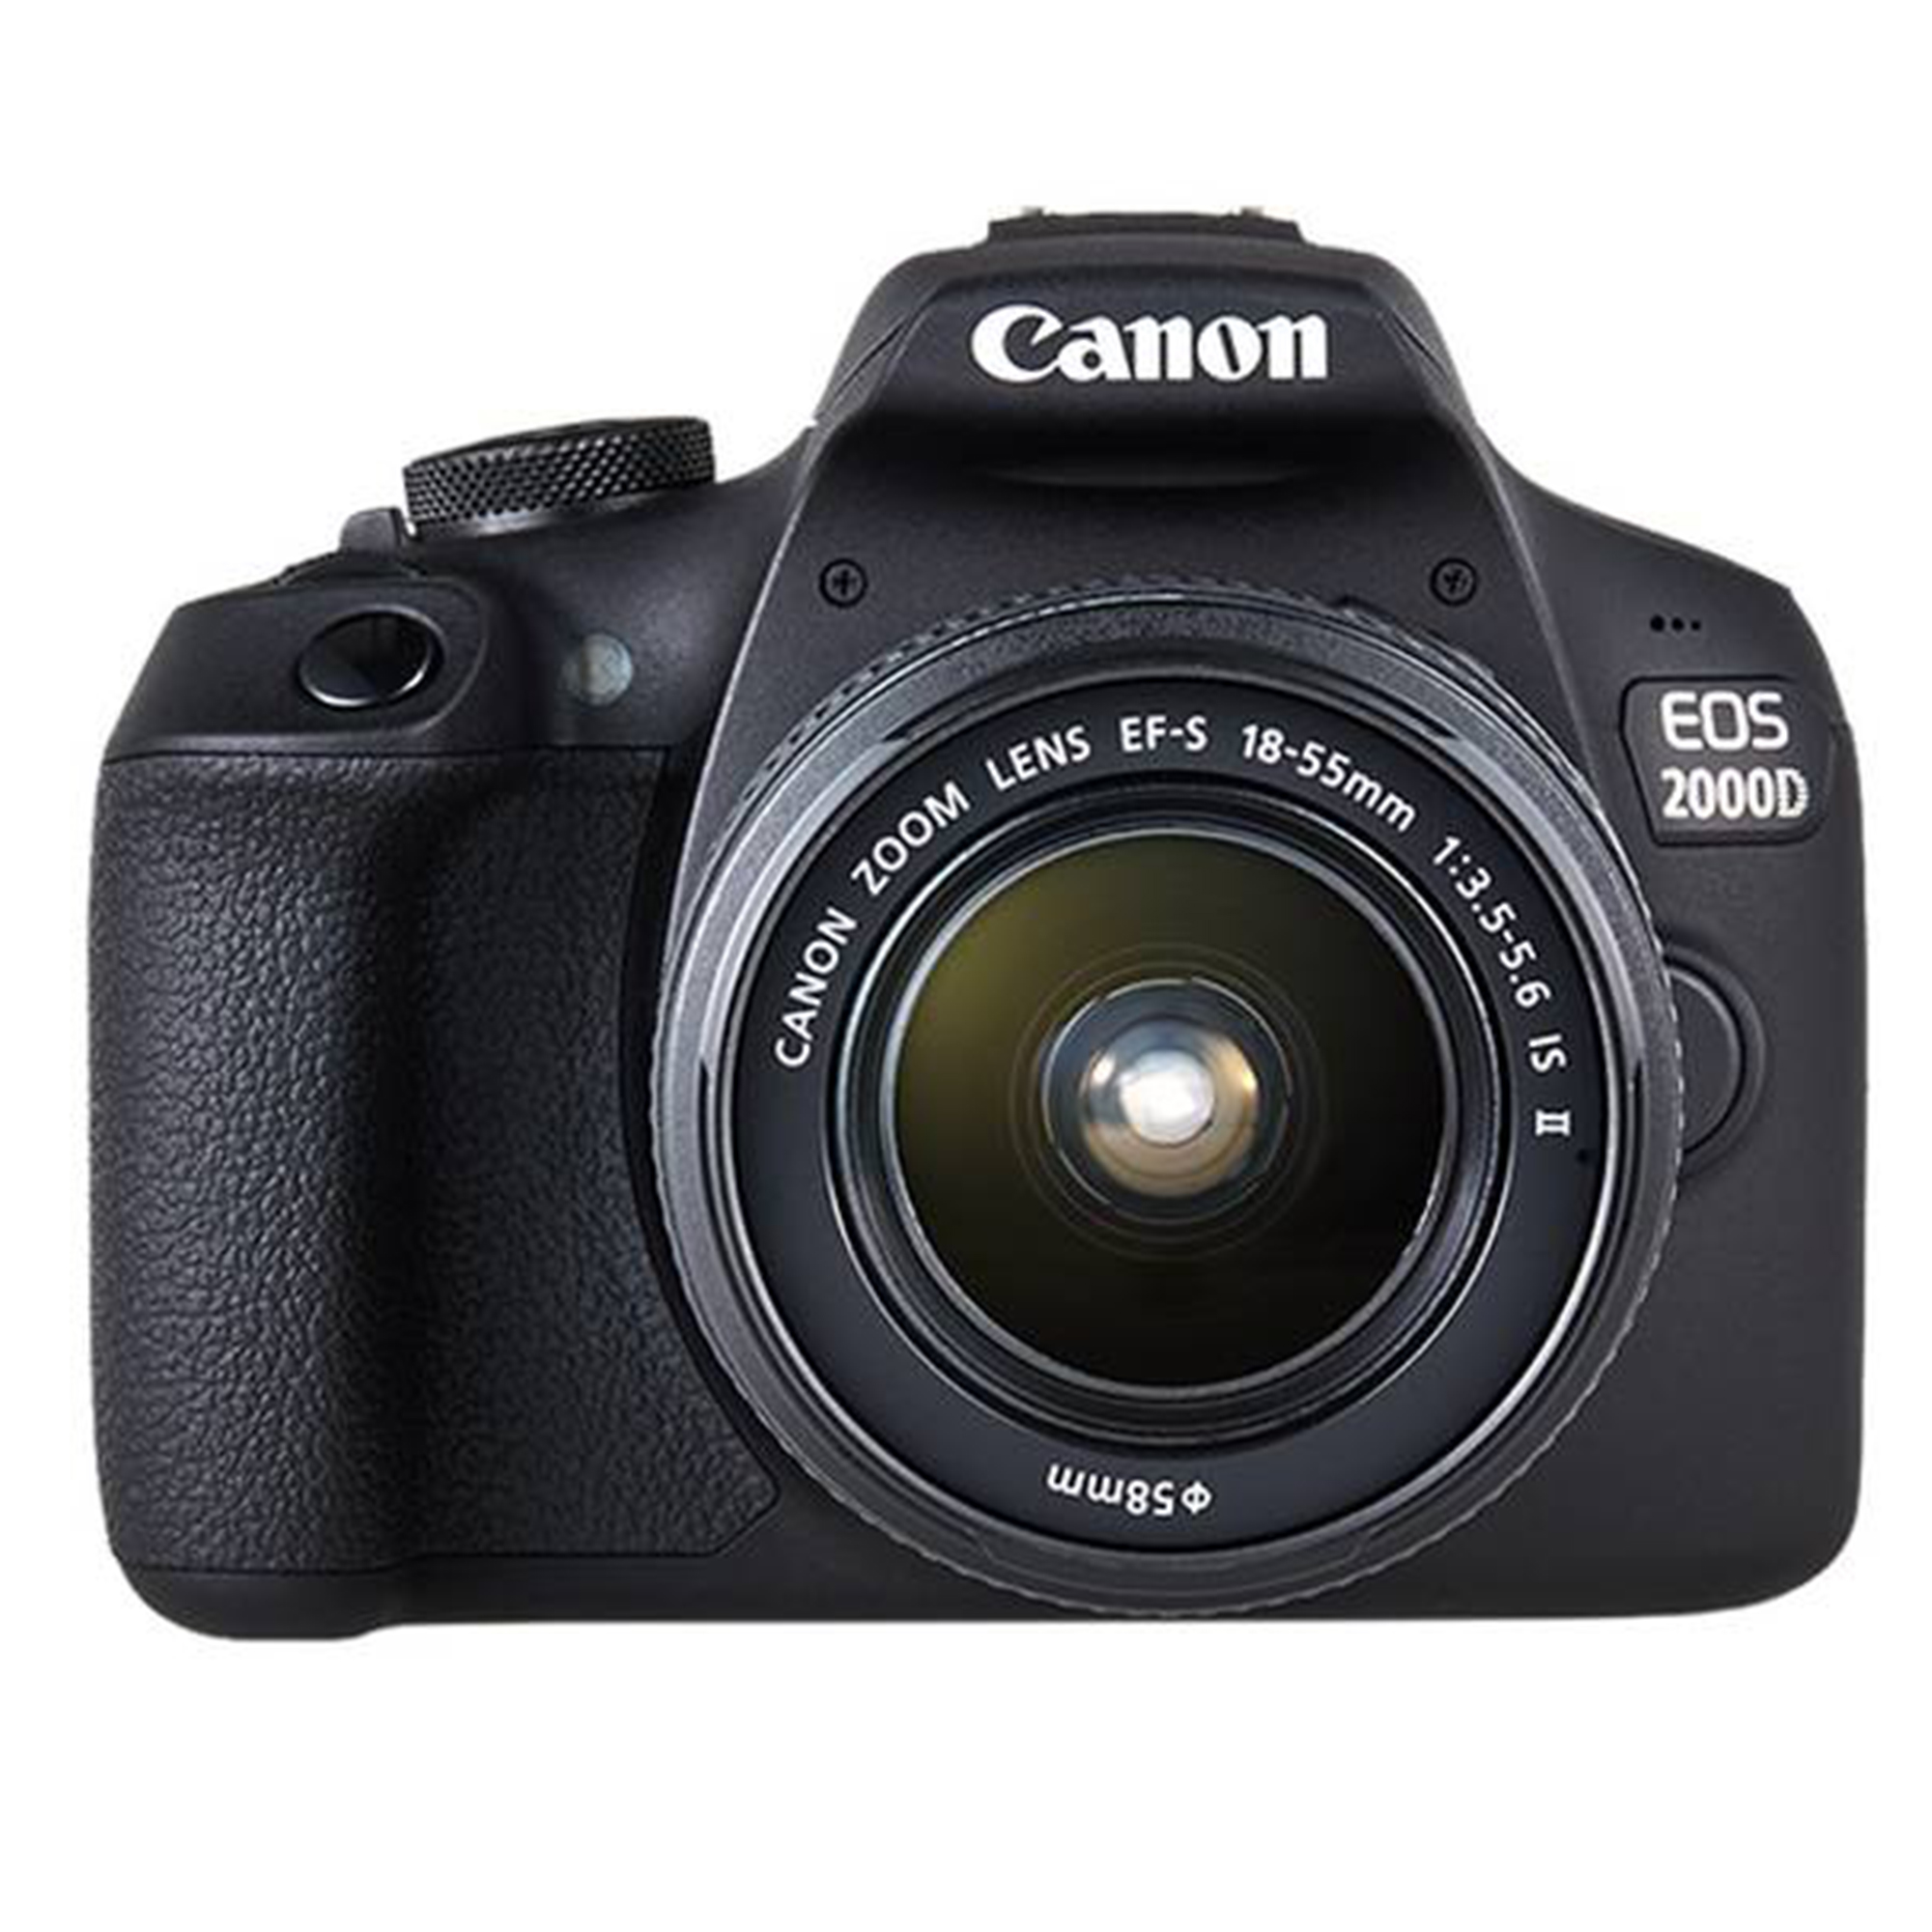 Canon EOS 2000D With 18-55mm Lens IS Kit